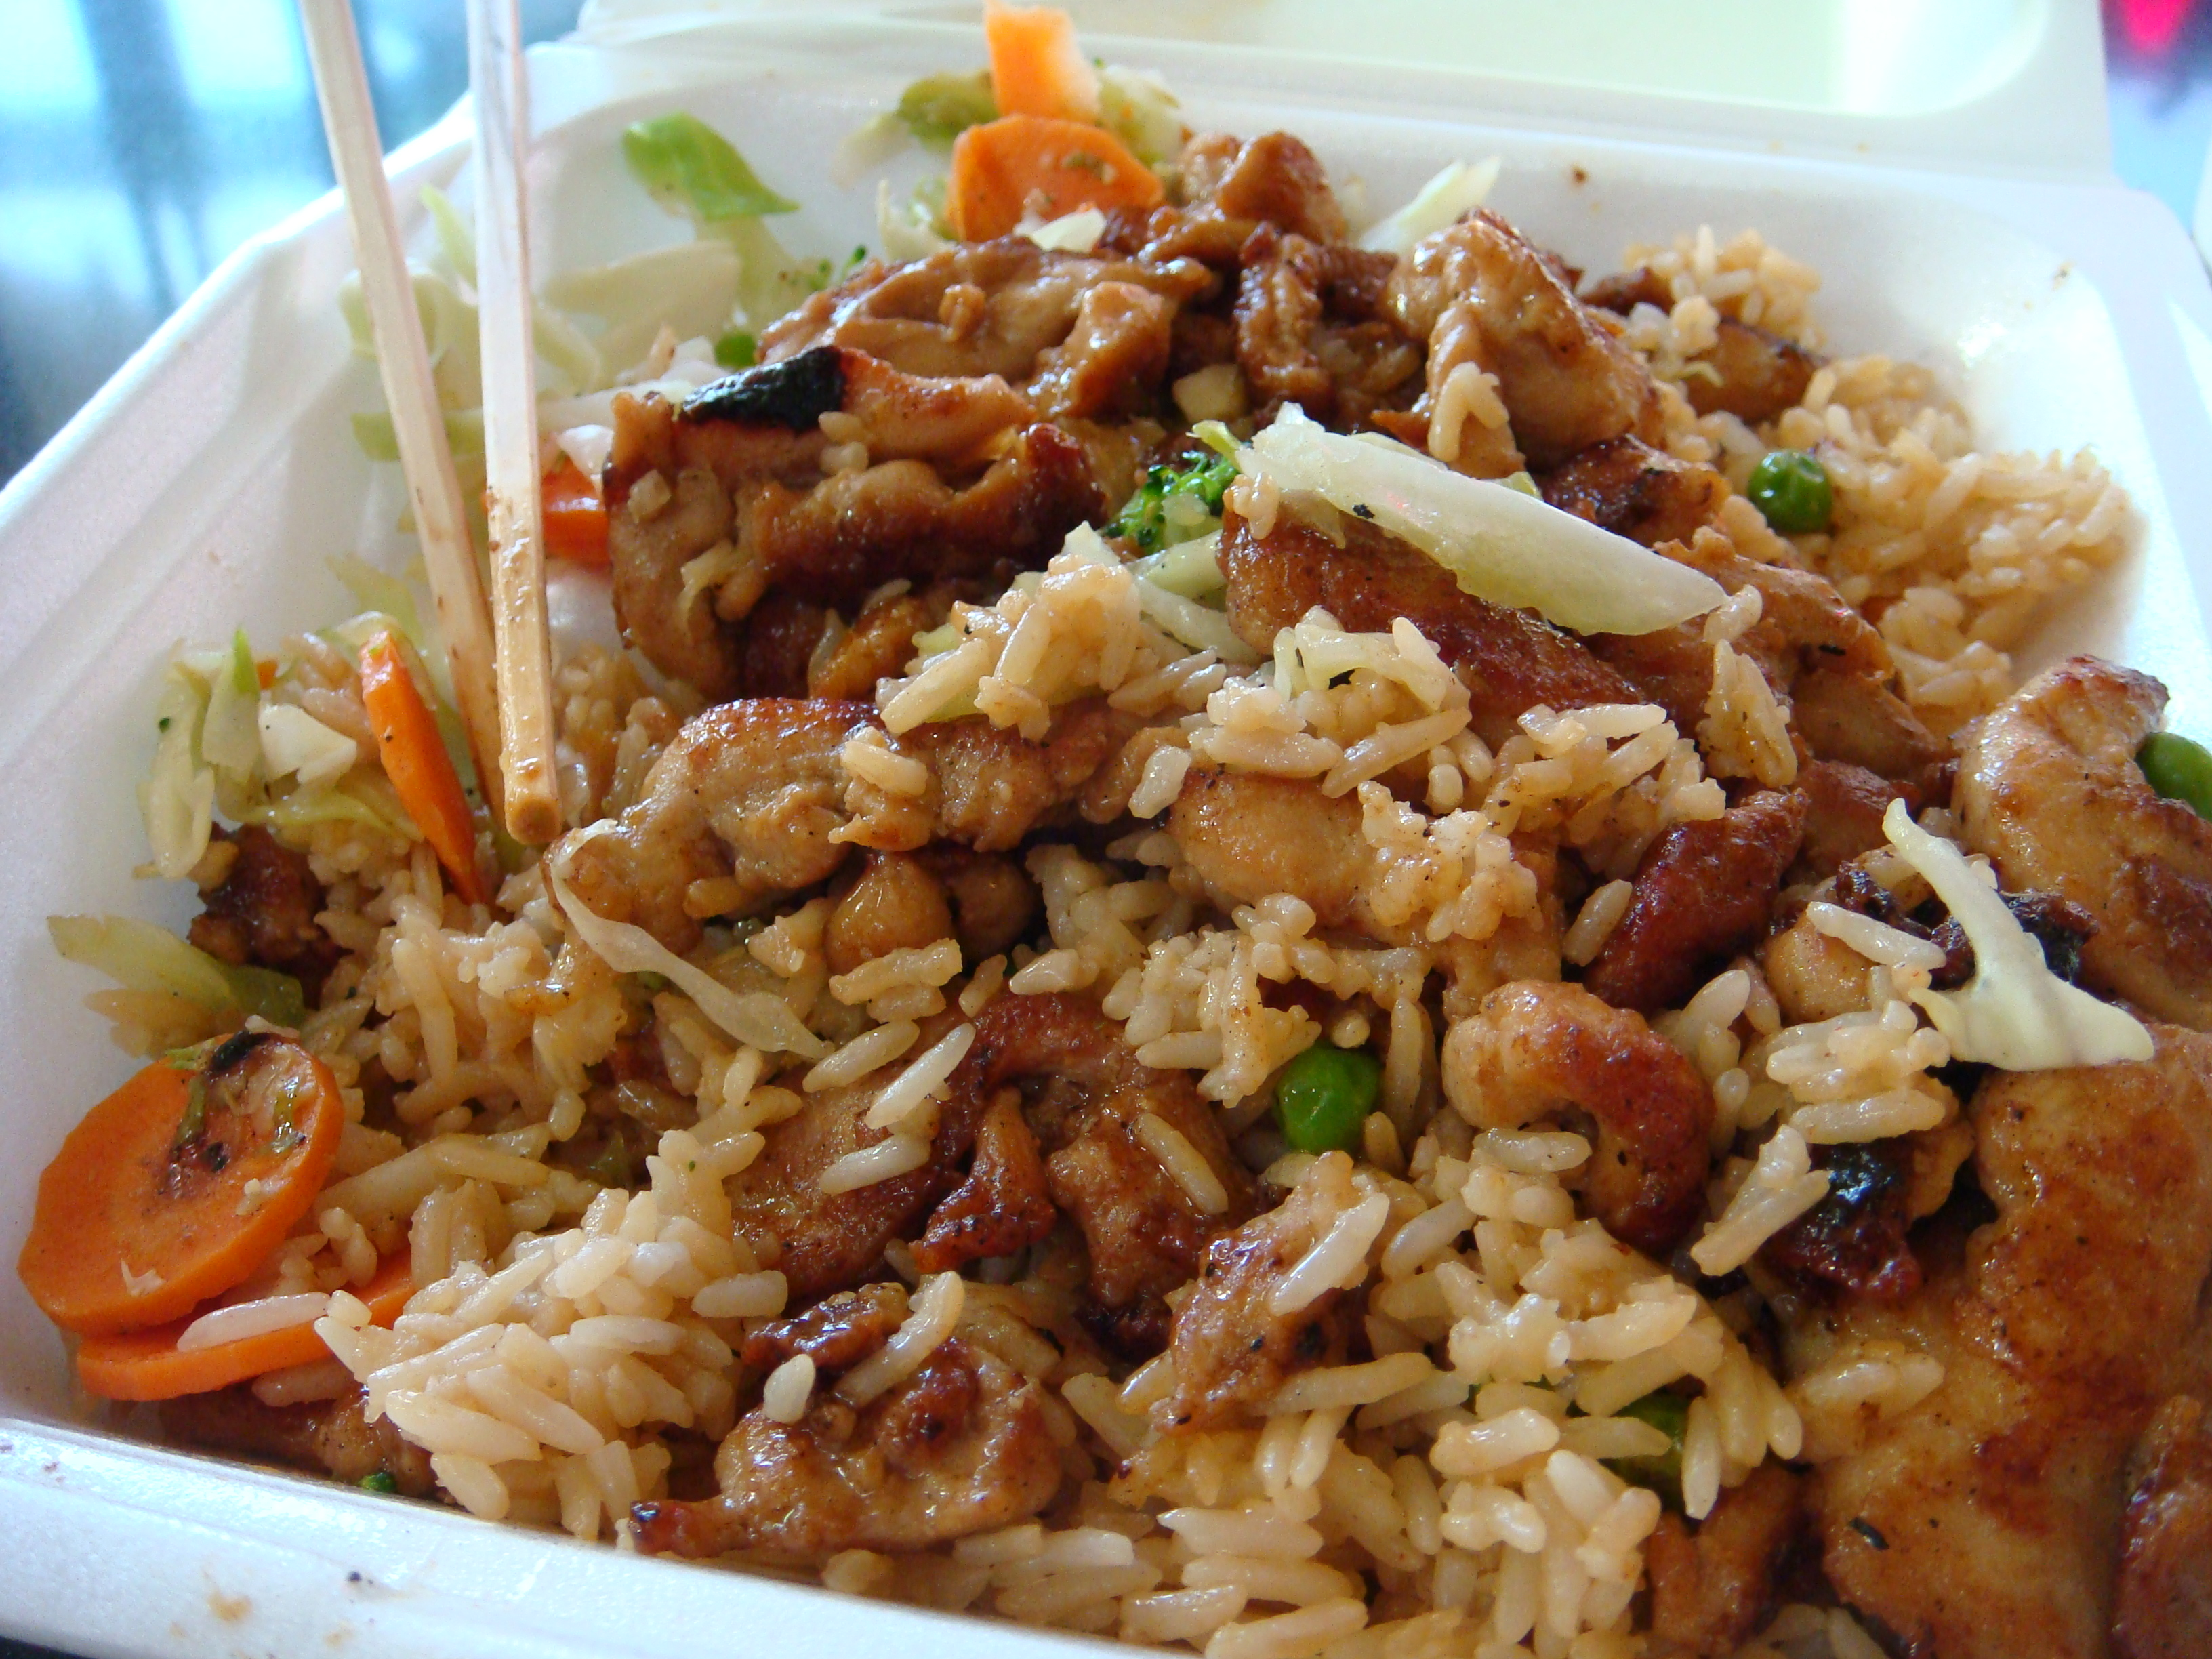 Chicken teriyaki sophies dish sarku japan is a fast food forumfinder Images